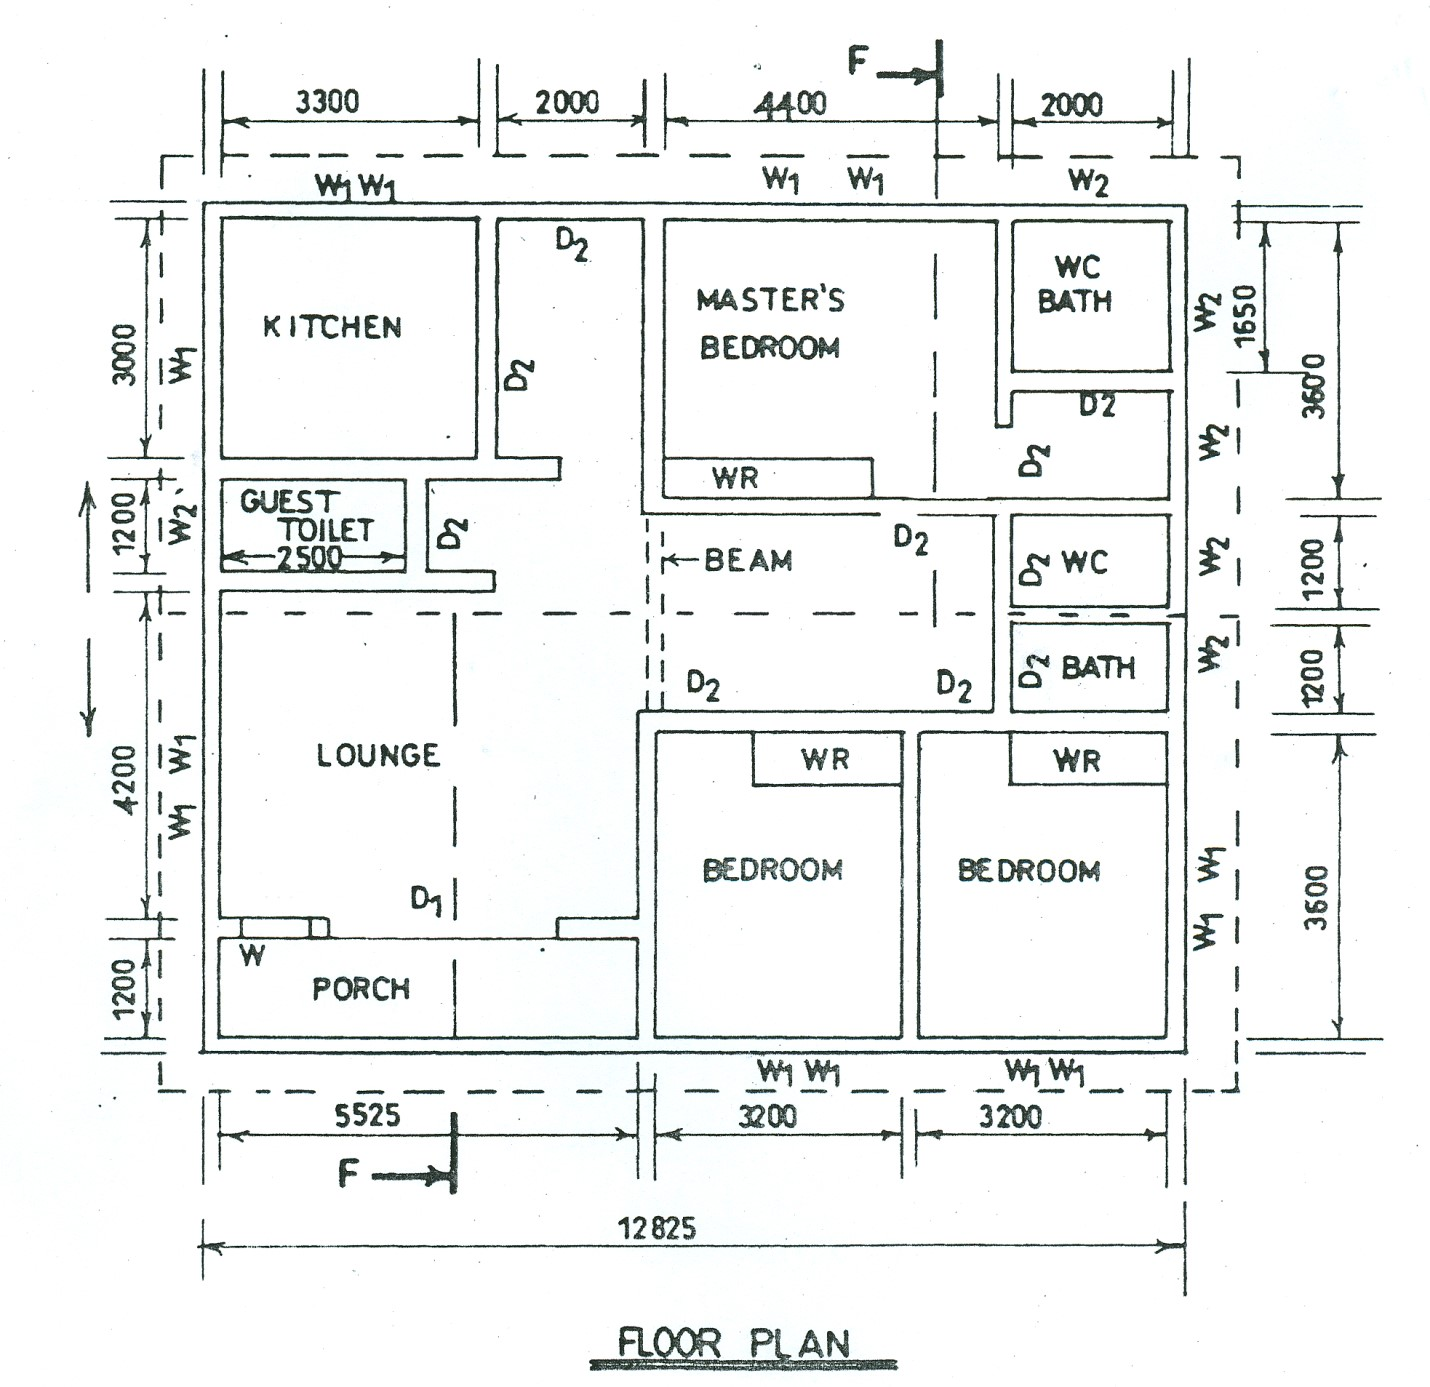 Drawing floor plans online free best free home Online plan drawing